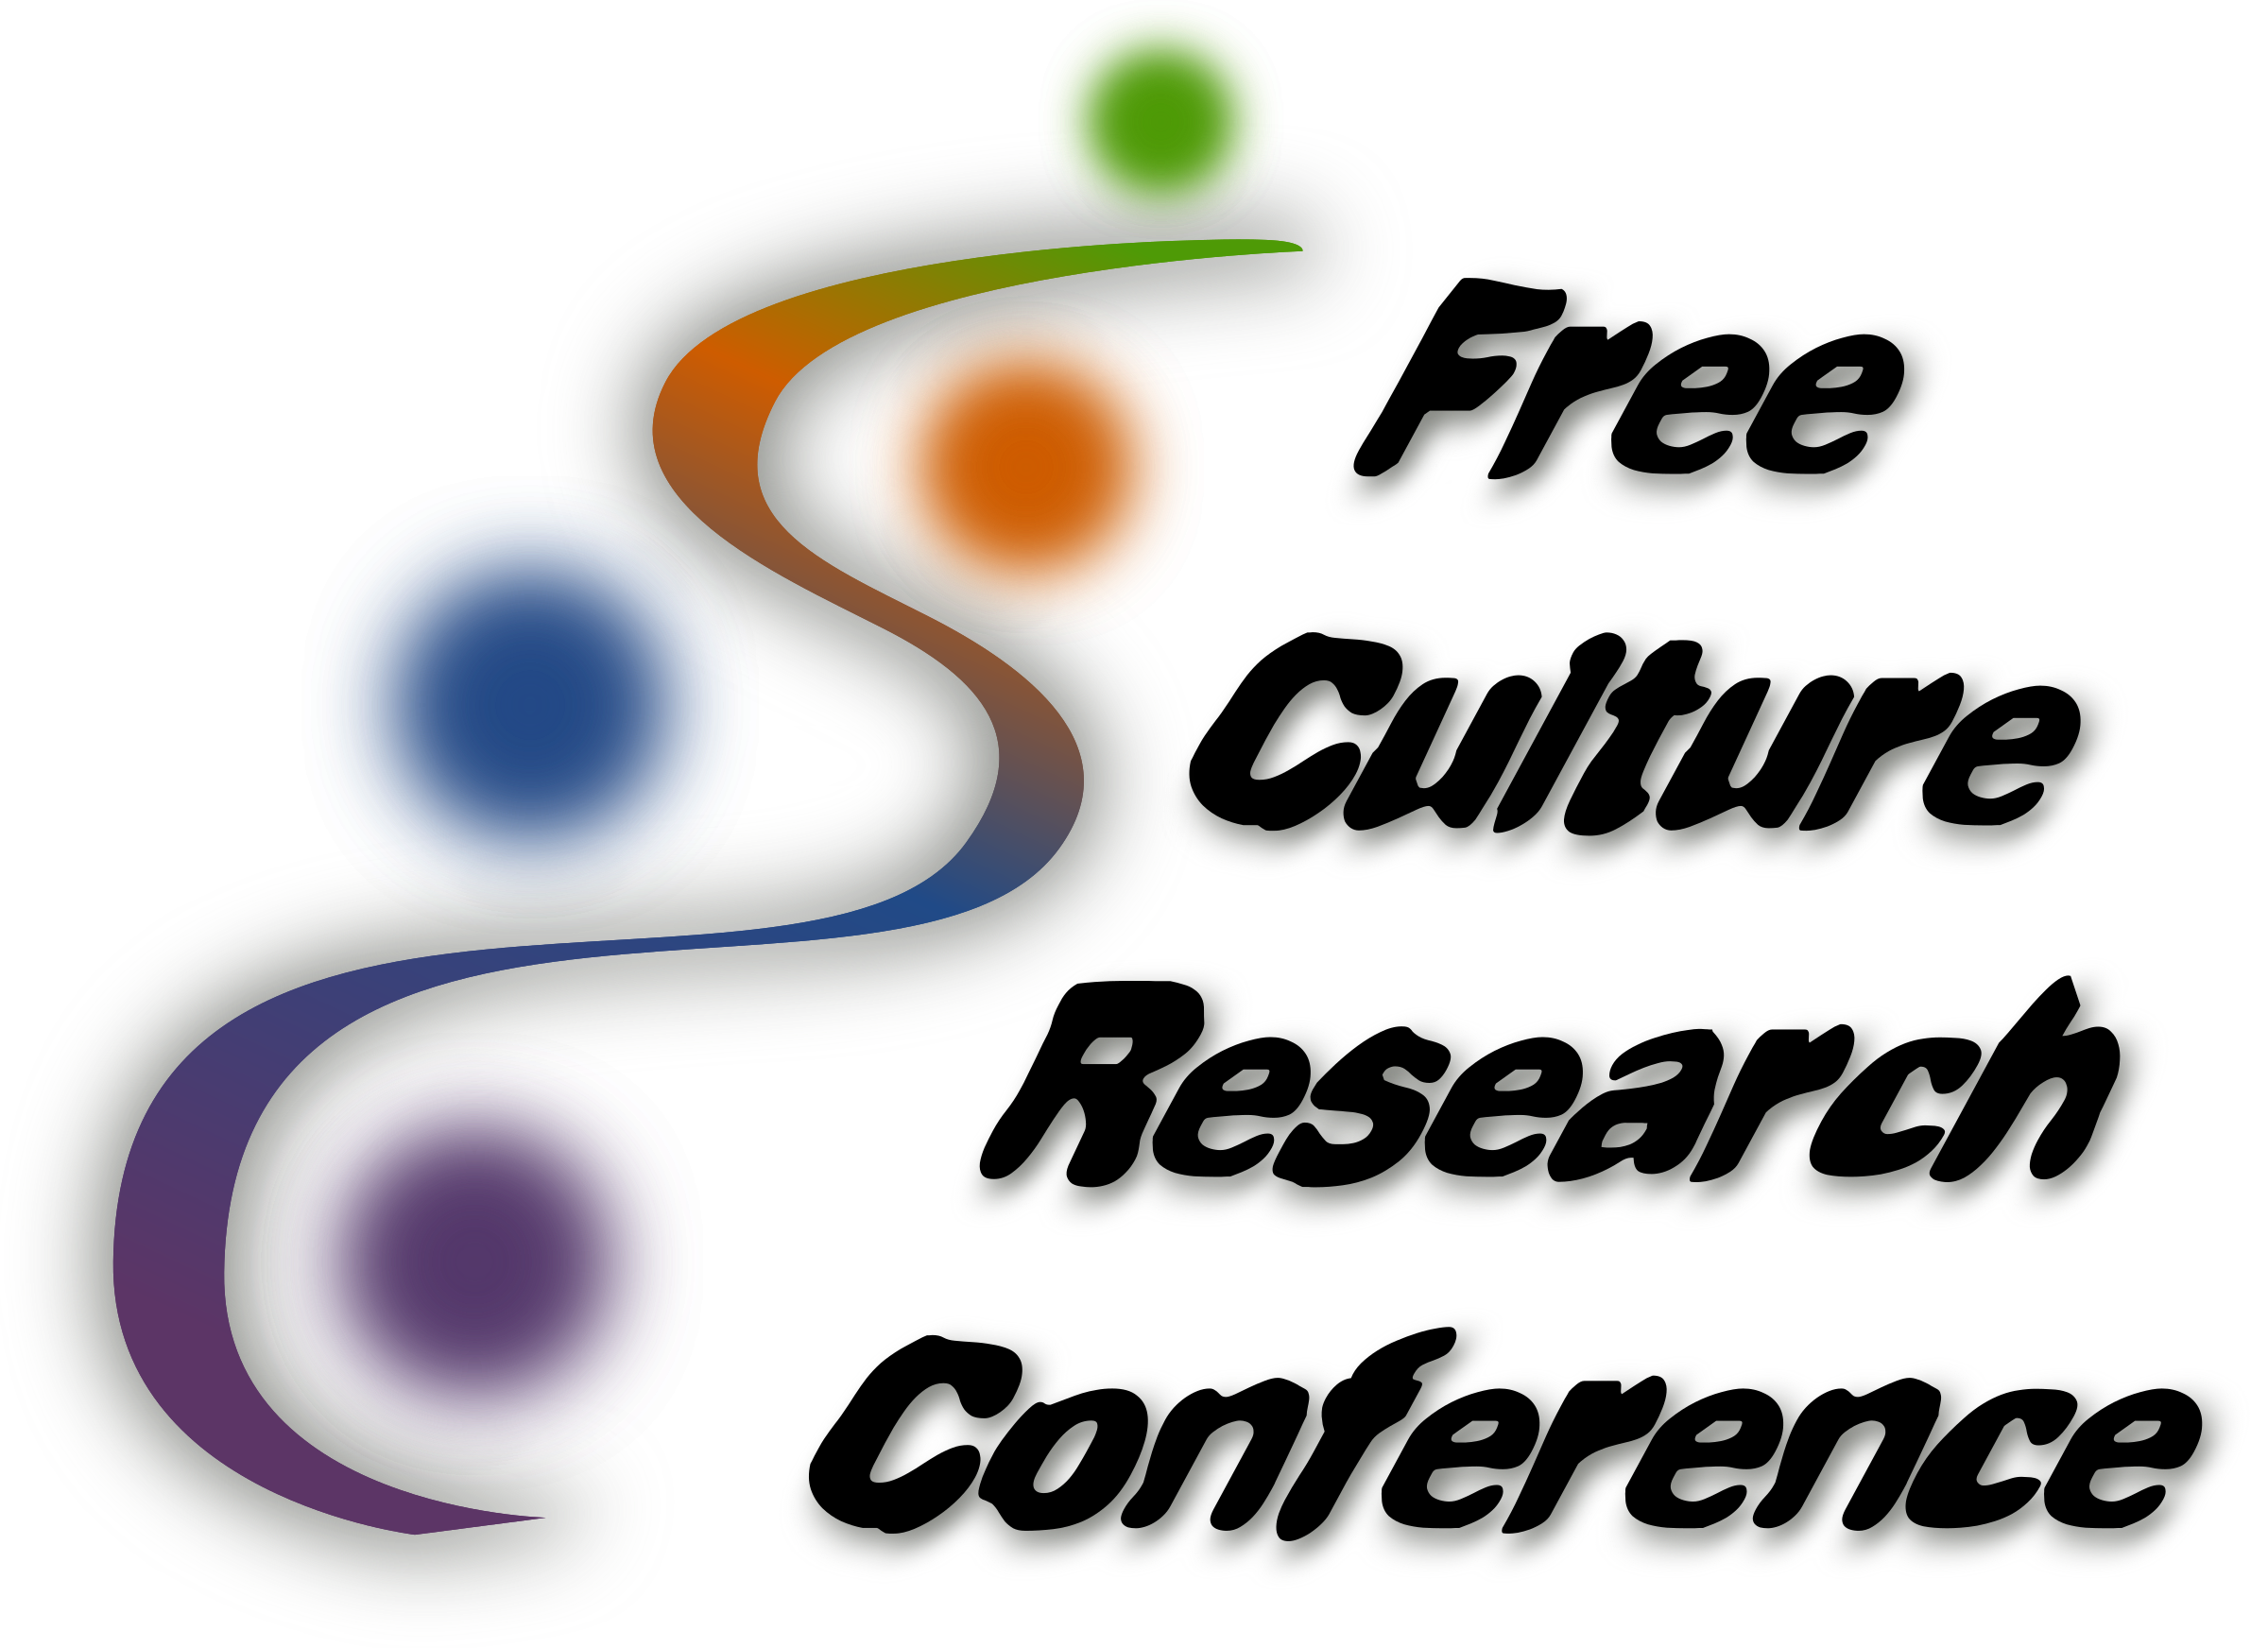 Free Culture Research Conference Logo by alexg